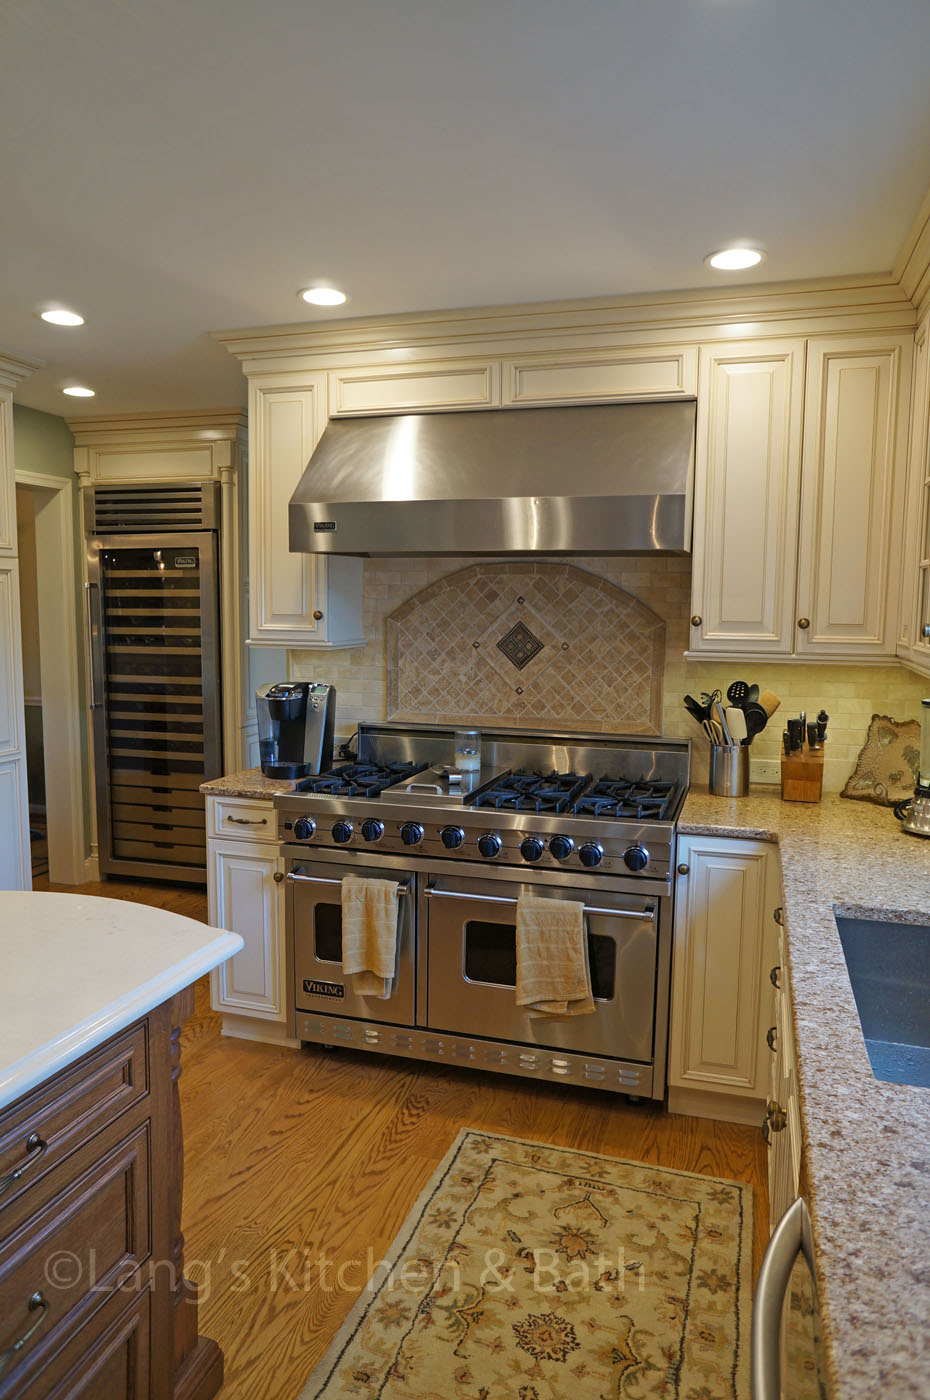 Peirce kitchen design 5_web.jpg